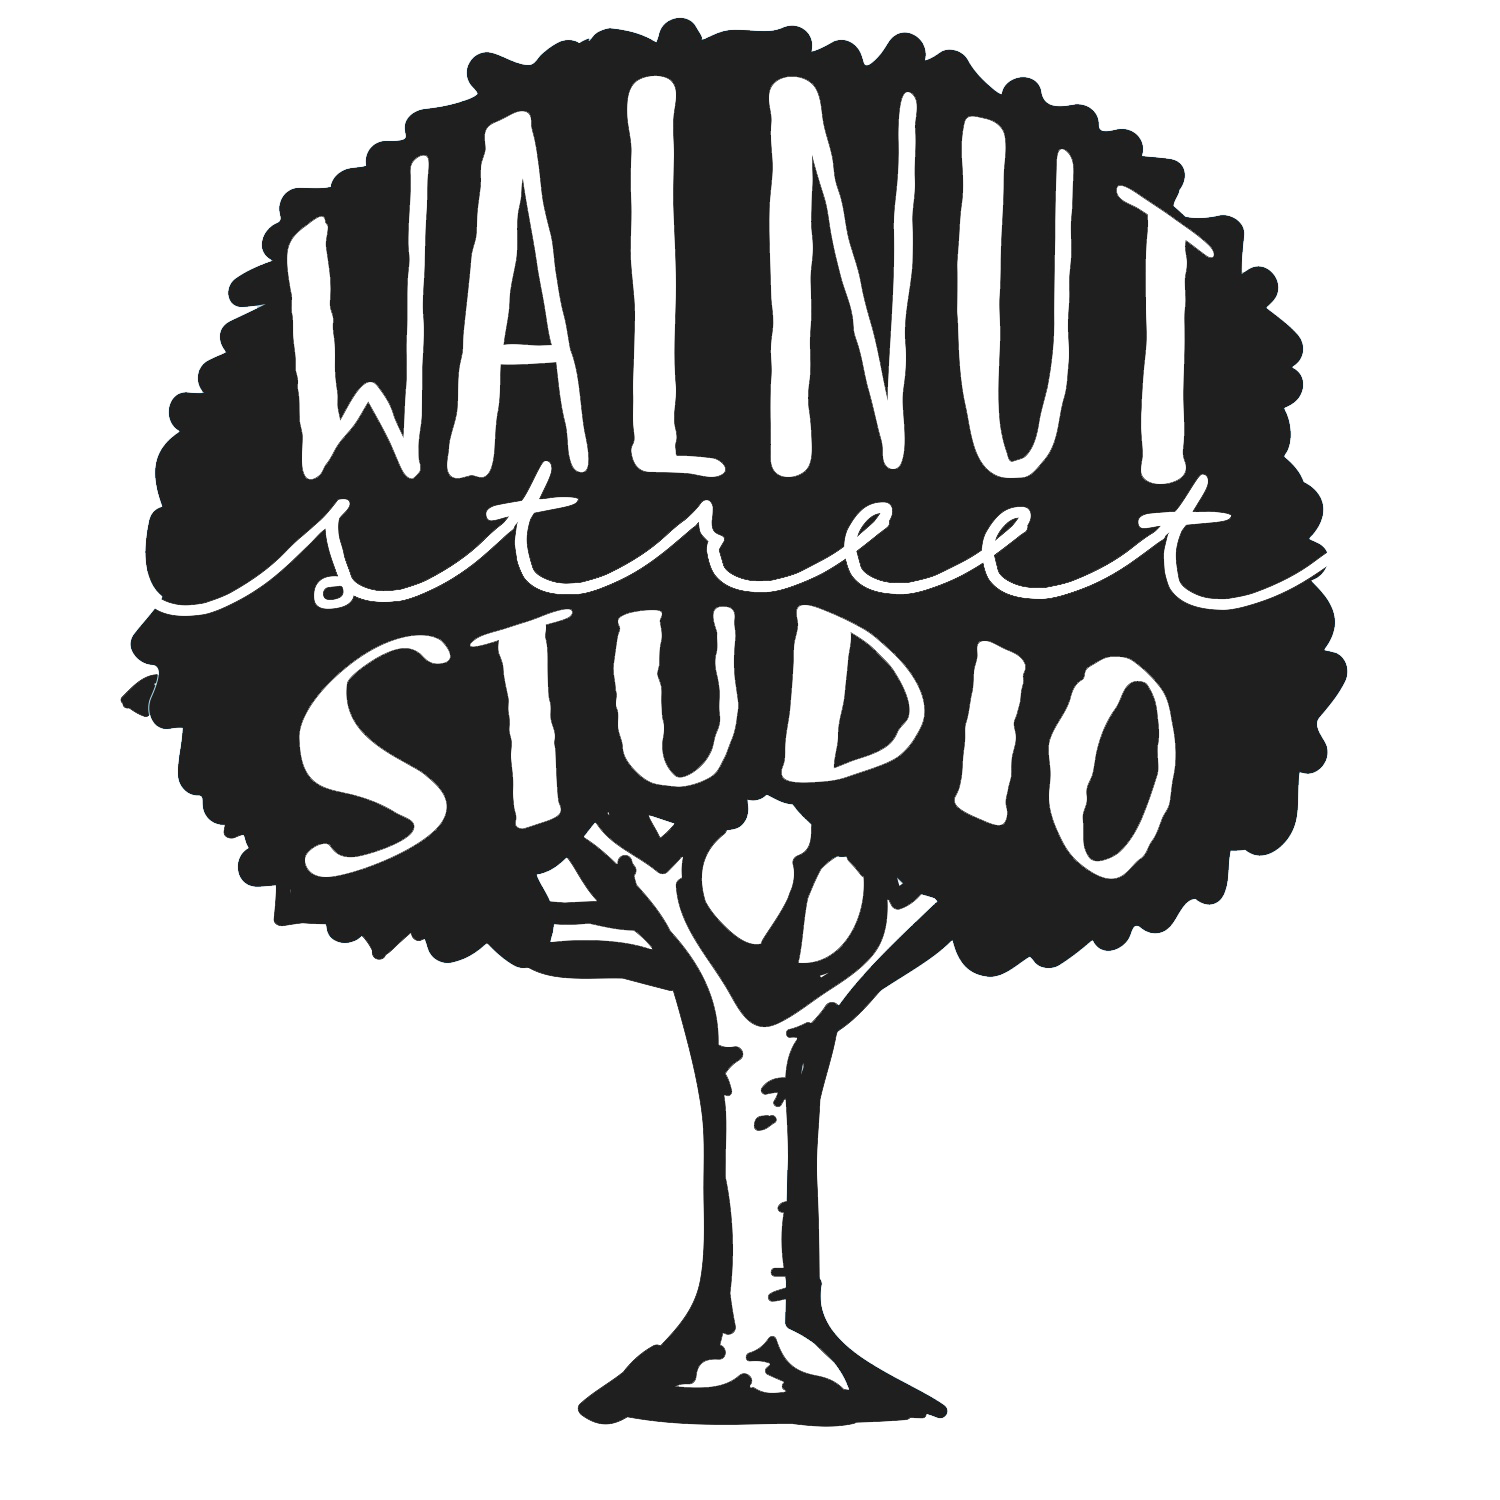 Walnut Street Studio